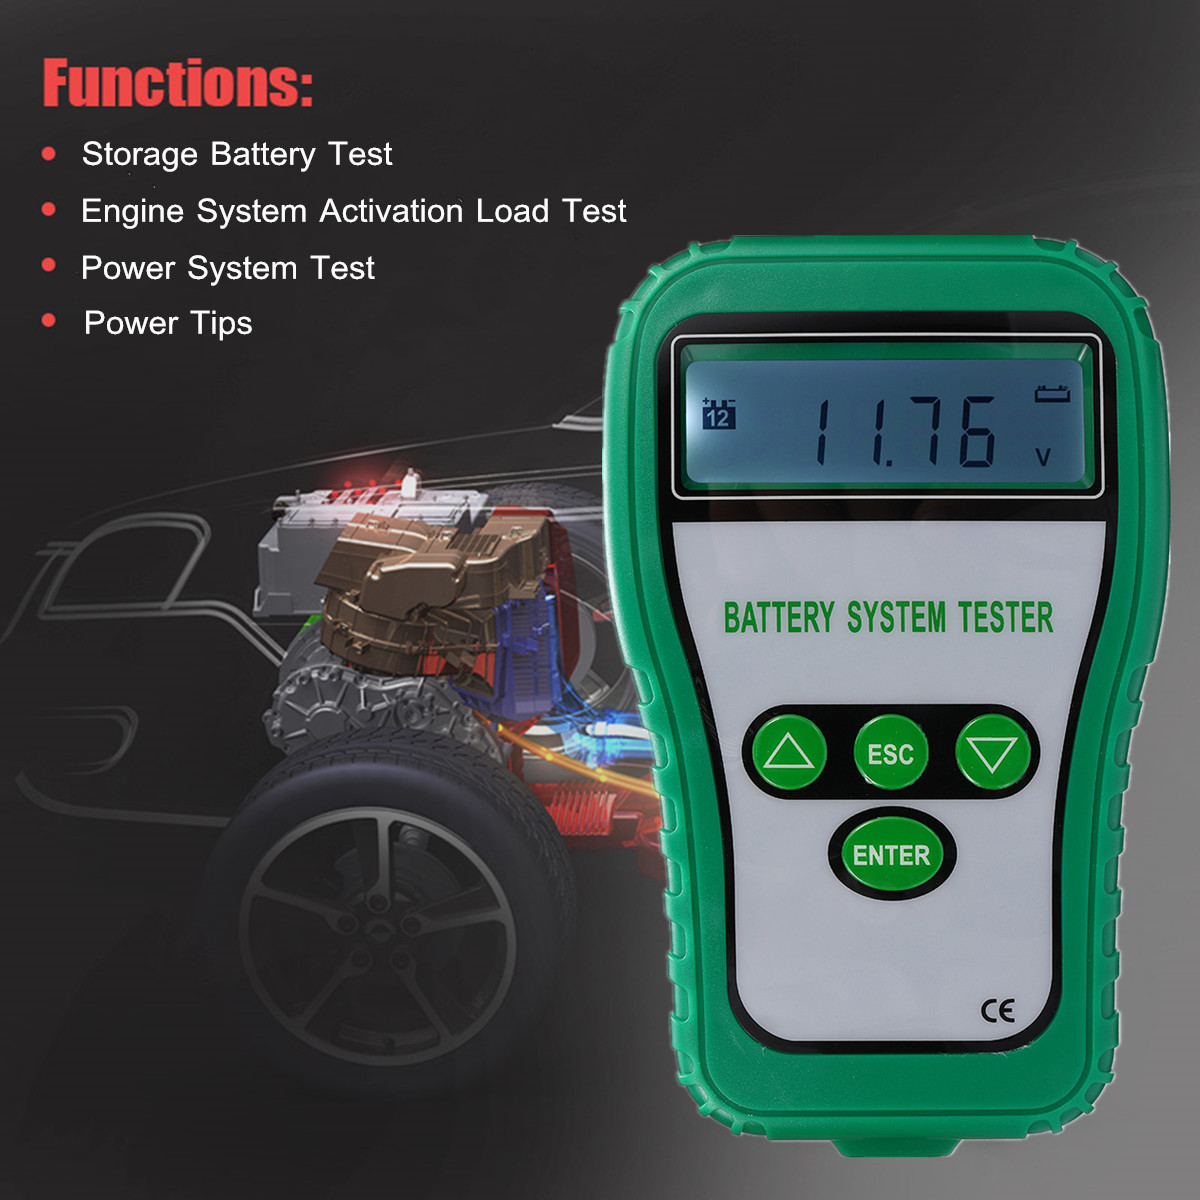 12V LCD Digital Battery Tester Analyzer Tester Cranking Amps Battery Alternator Battery System Resistance Voltage Life Analysis motopower grey 12v smart digital battery tester voltmeter alternator analyzer with lcd and led display for car motorcycle boat